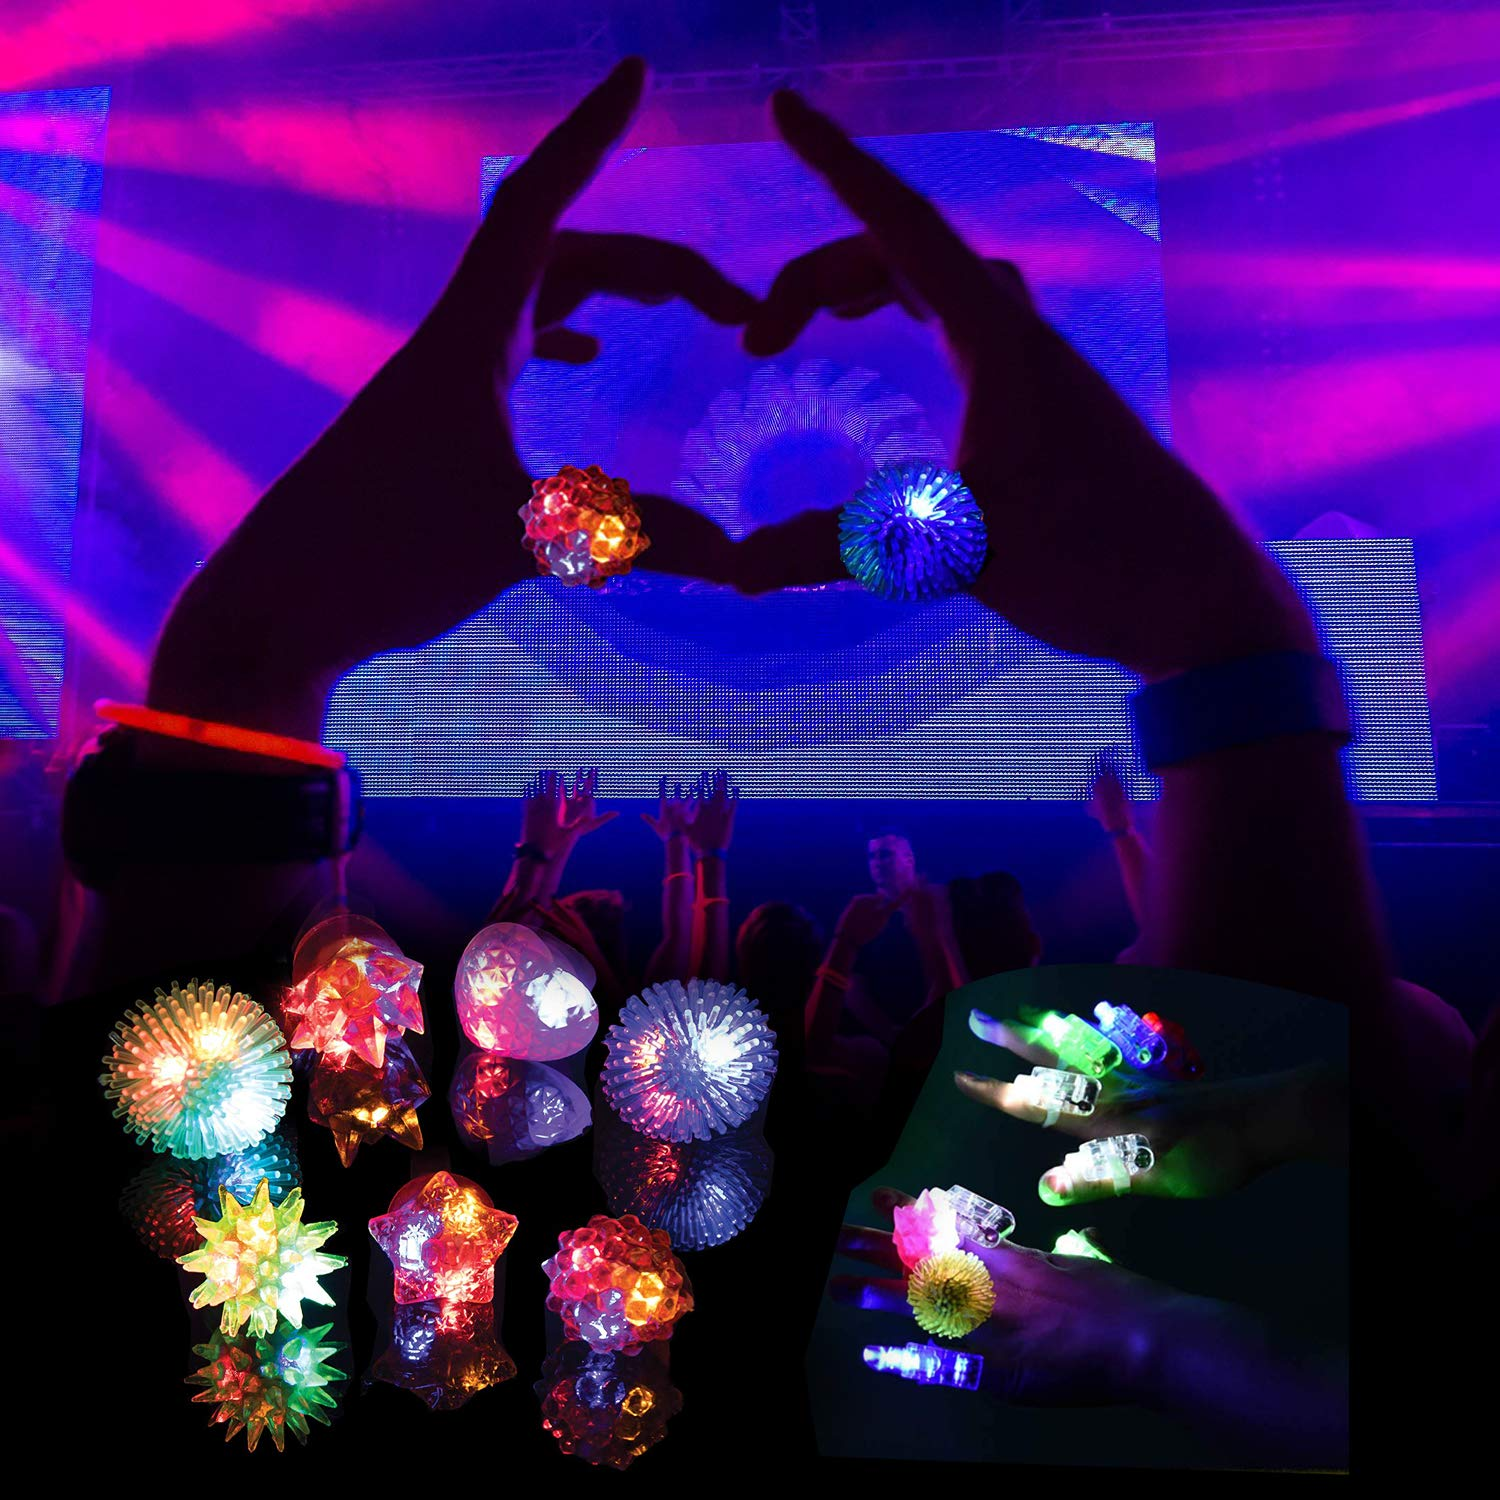 68 Pack LED Light Up Toys Halloween LED Glow Party Favors for Kids Glow in the Dark Party Supplies 4 Flashing Slotted Shades Glasses 10 Glow Rings 50 LED Finger Lights 5 LED Bracelets Christmas Gift by Godlike (Image #6)